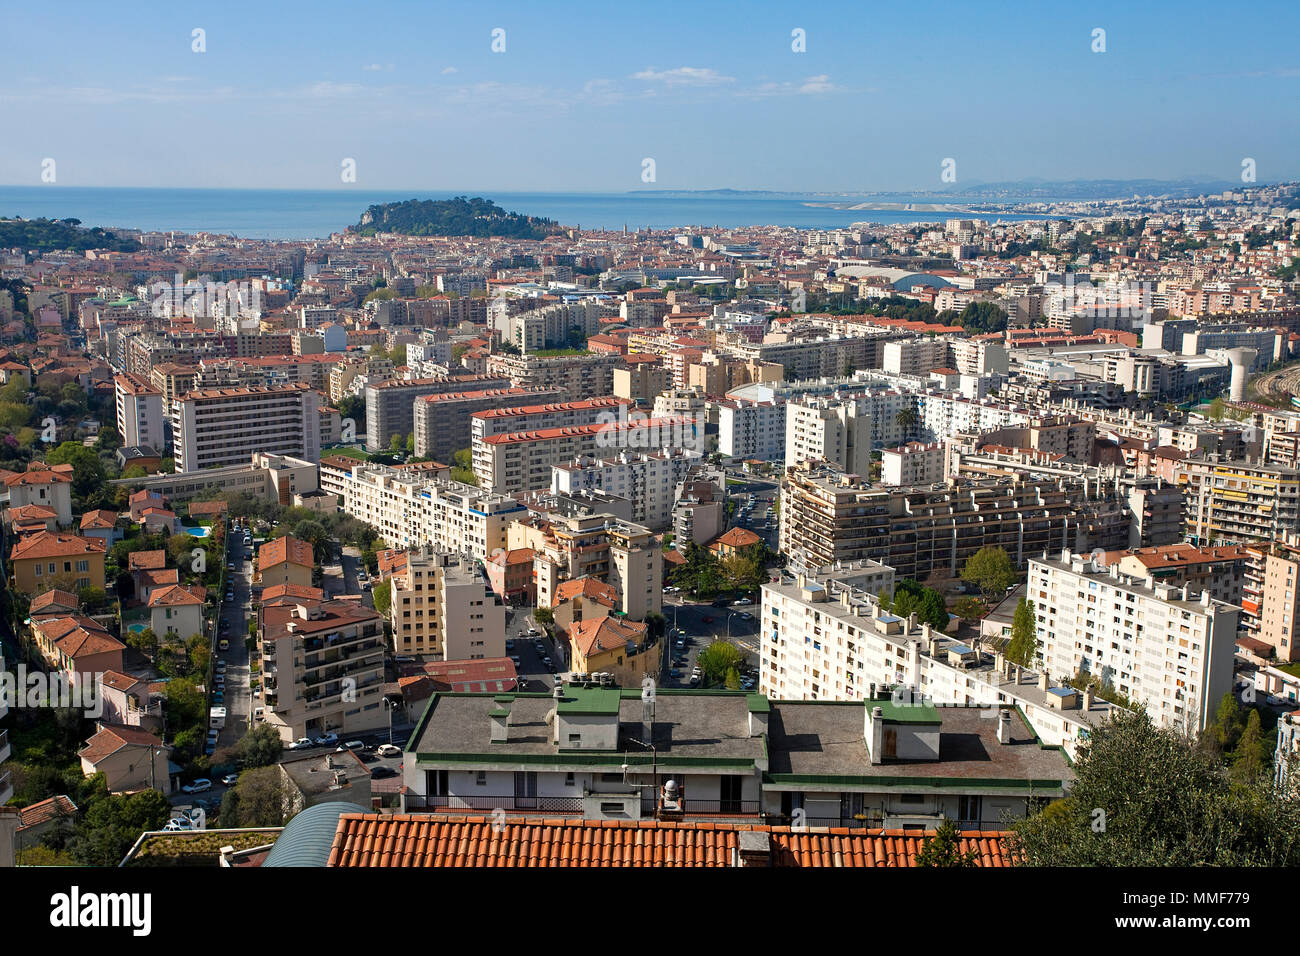 View on the city Nice and Mediterranean sea, Côte d'Azur, Alpes-Maritimes, South France, France, Europe - Stock Image